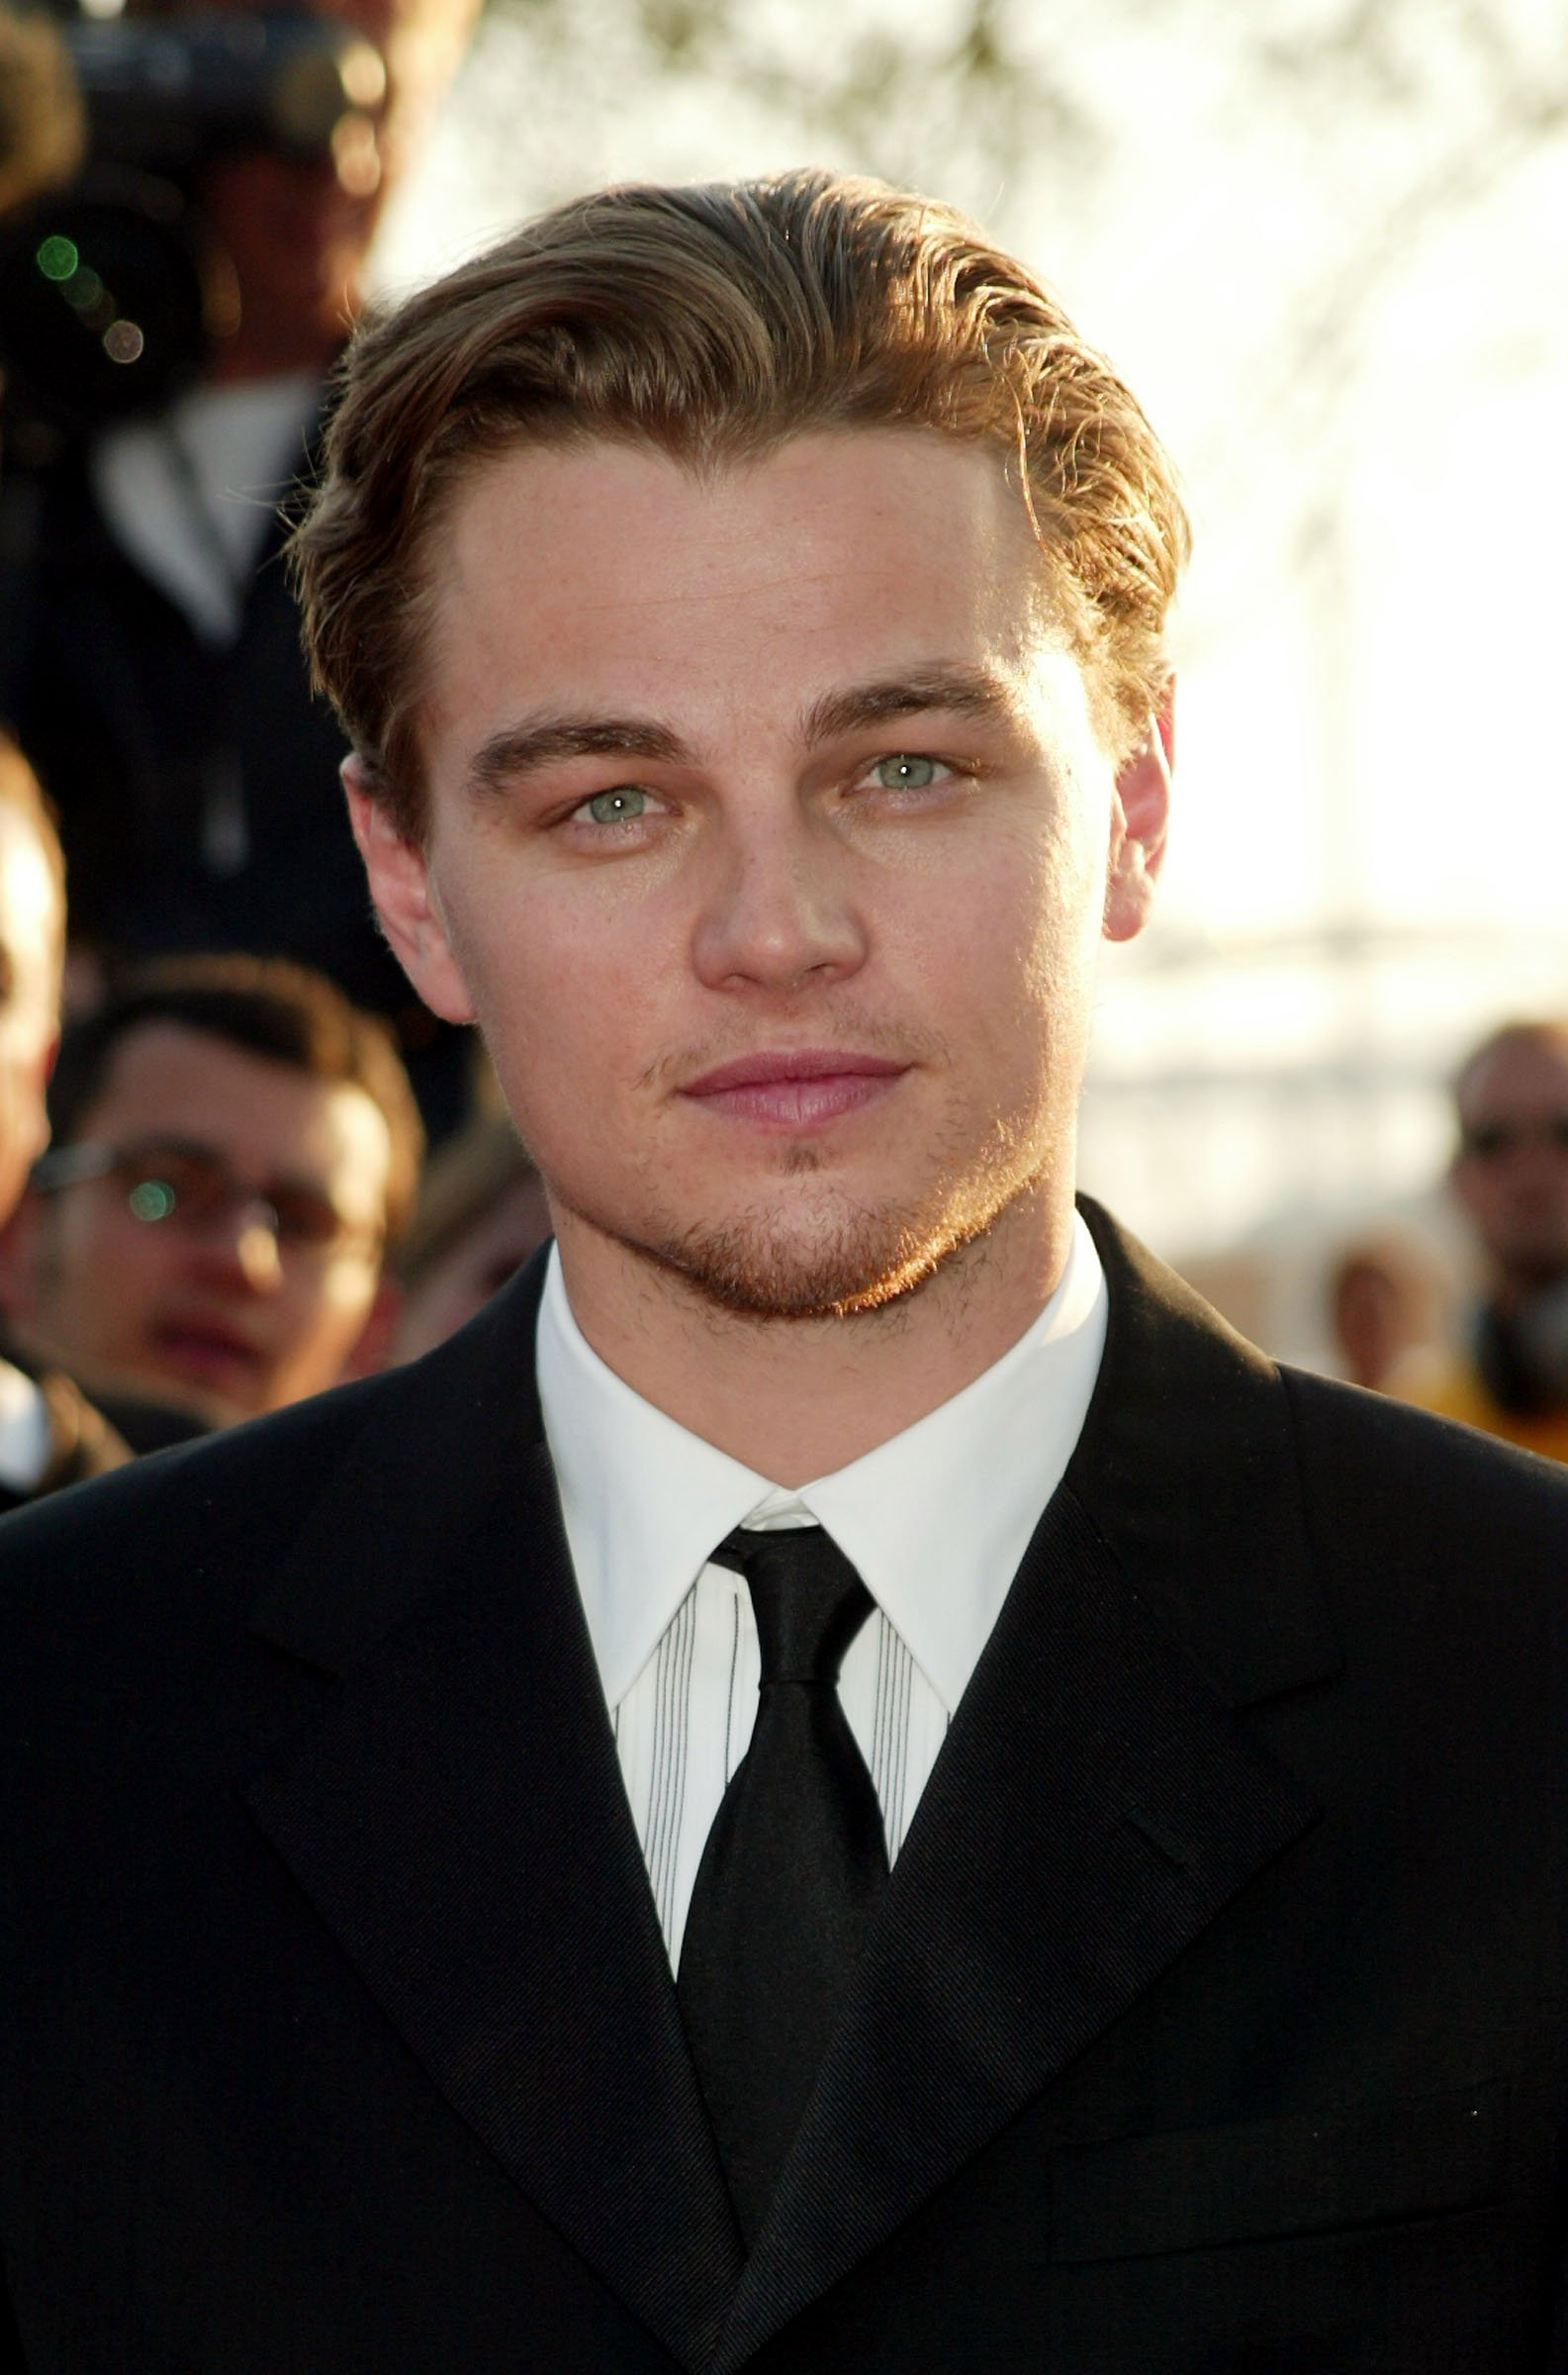 Image Source: Getty Images| Leonardo DiCaprio smiling for the camera